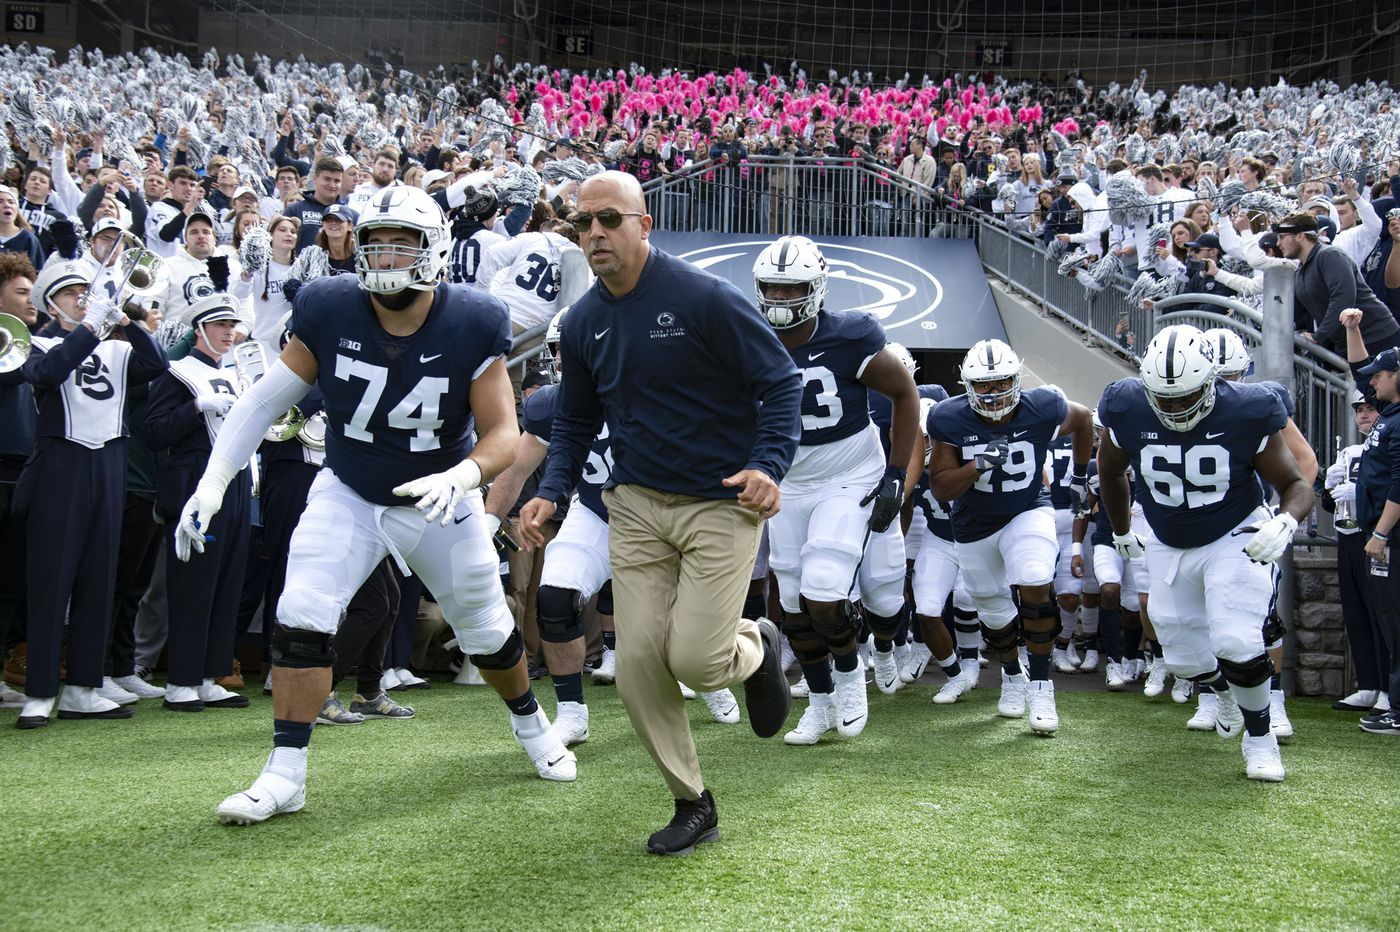 Penn State receives oral commitments from a four-star quarterback and a kicker from Bethlehem